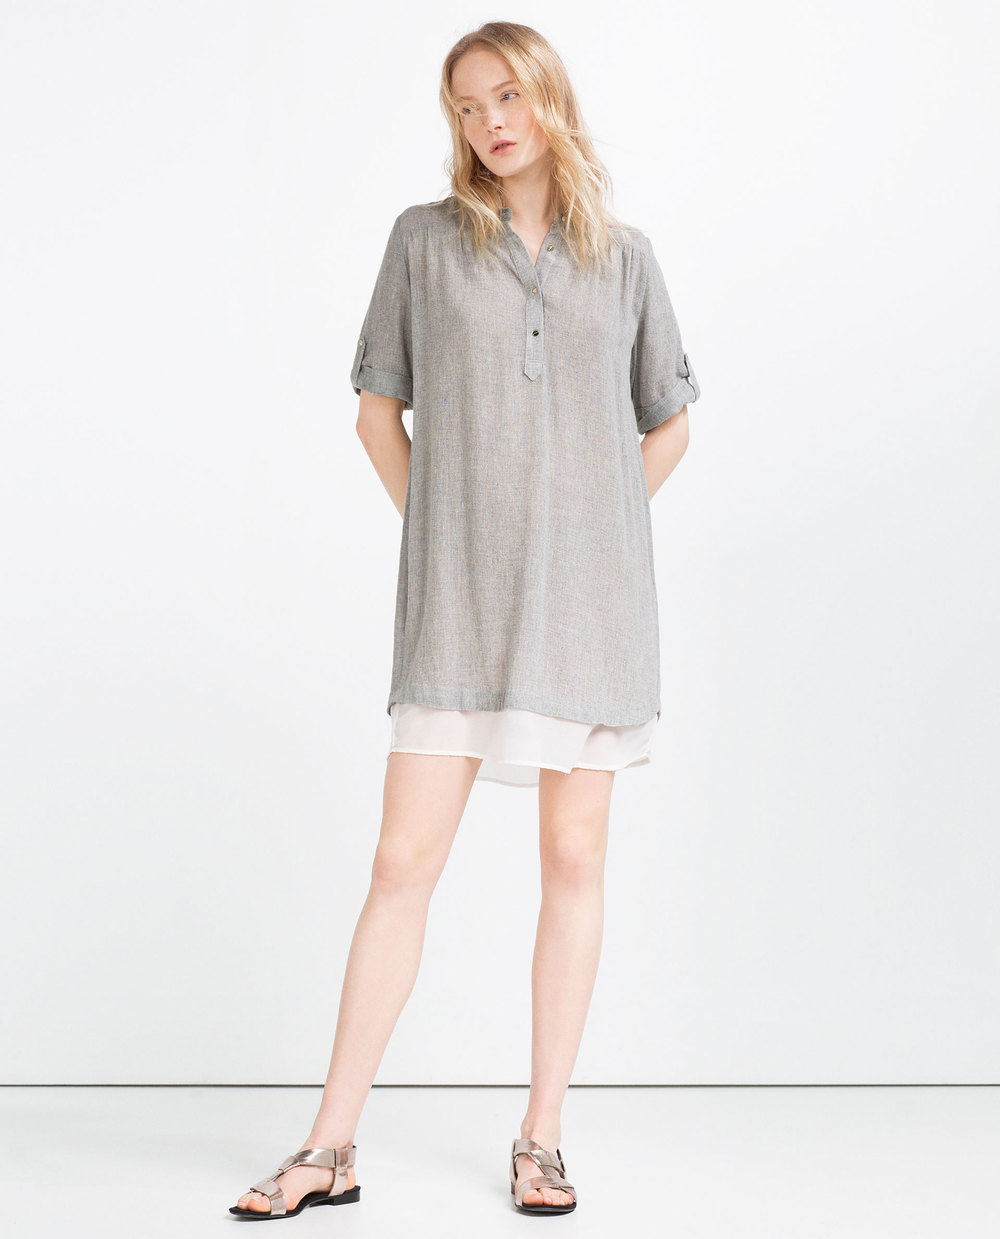 Contrast Tunic by Zara